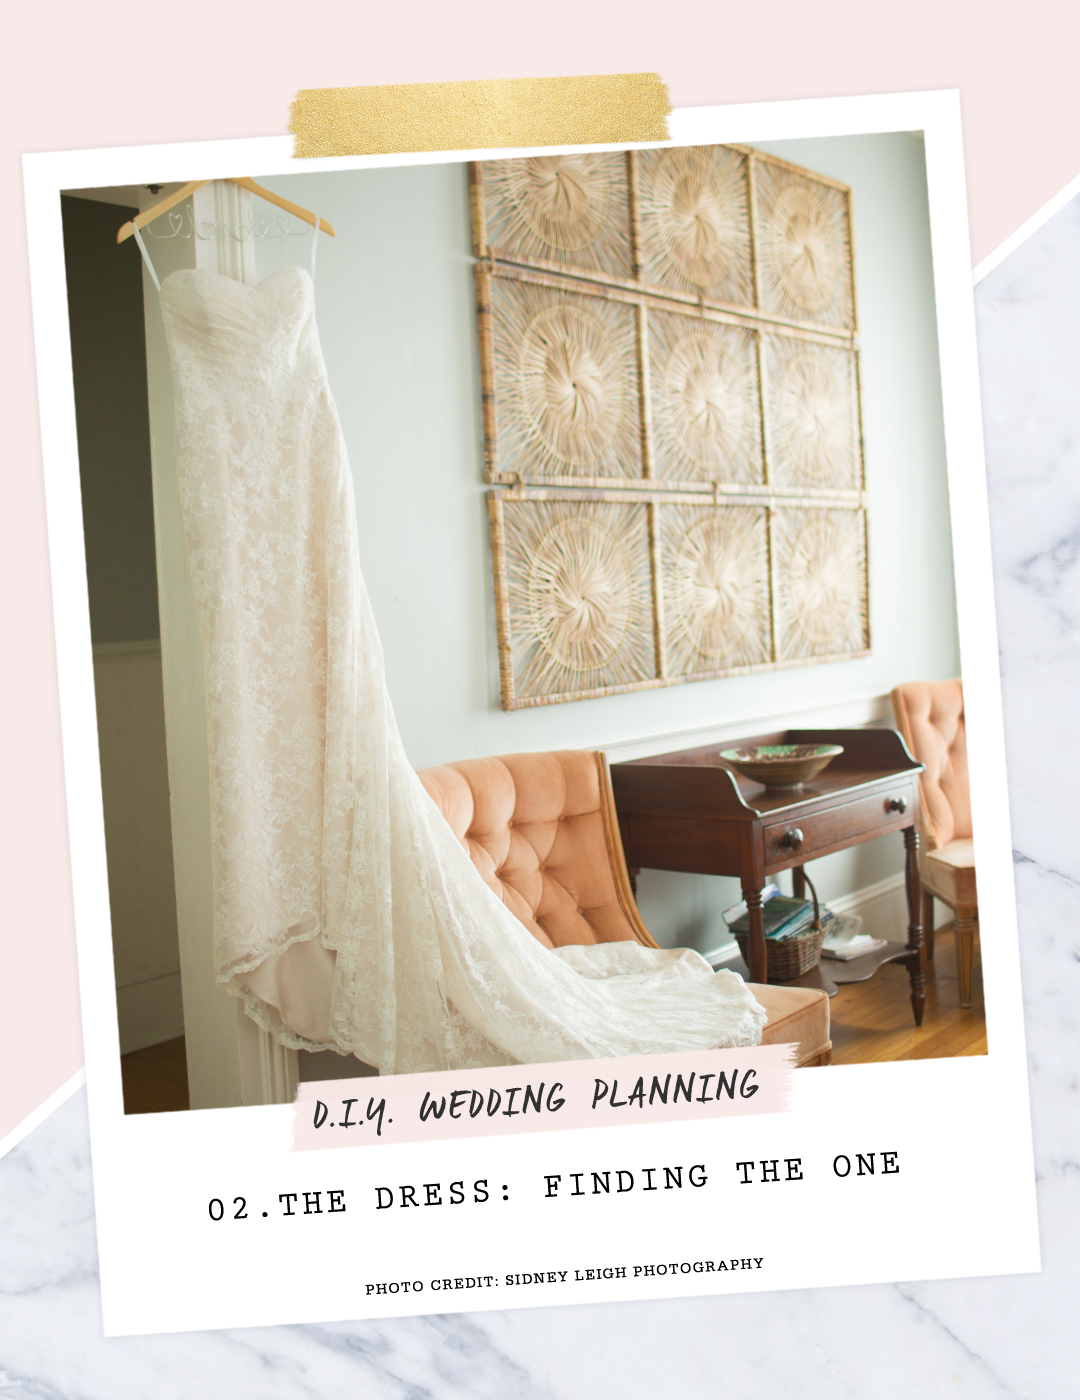 DIY Wedding Planning: Throwing Your Dream Wedding on a Budget